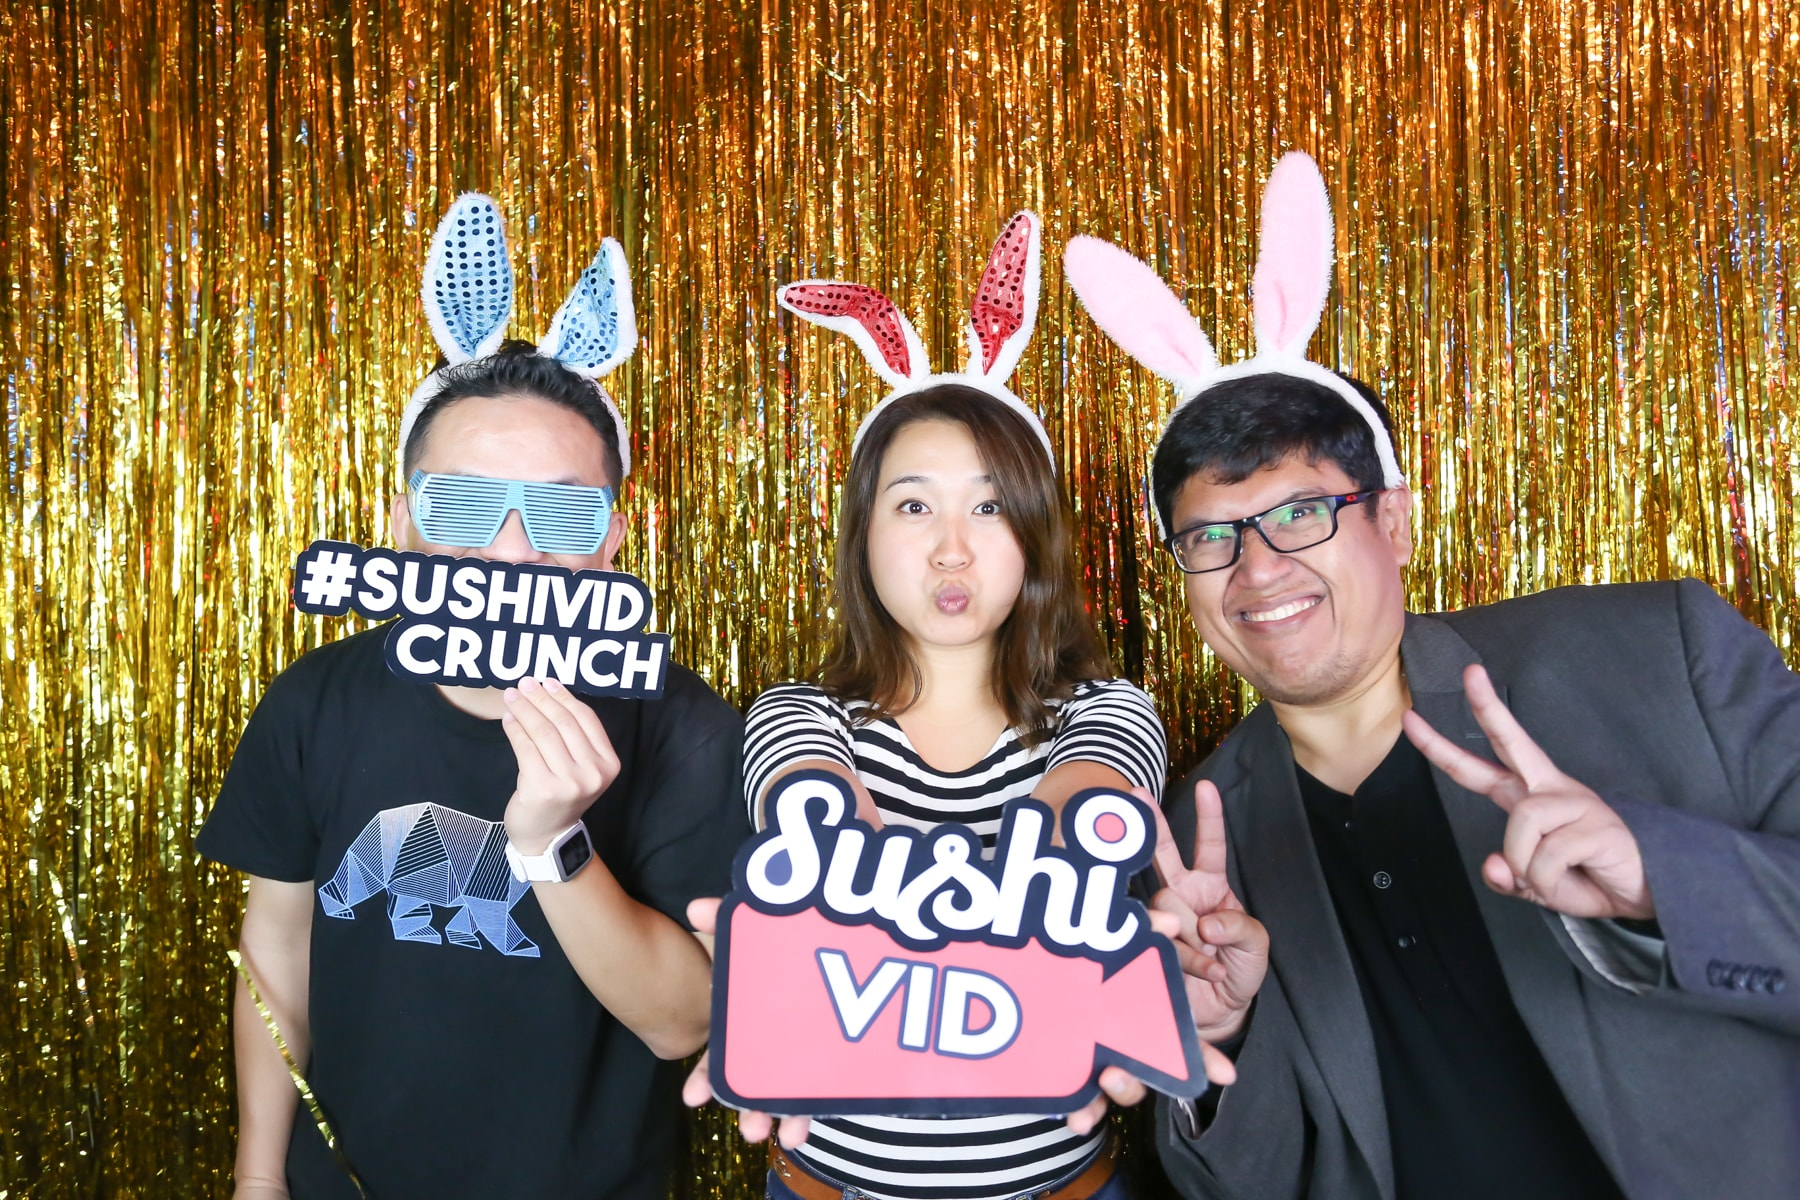 Sushivid+crunch+tagbooth+168